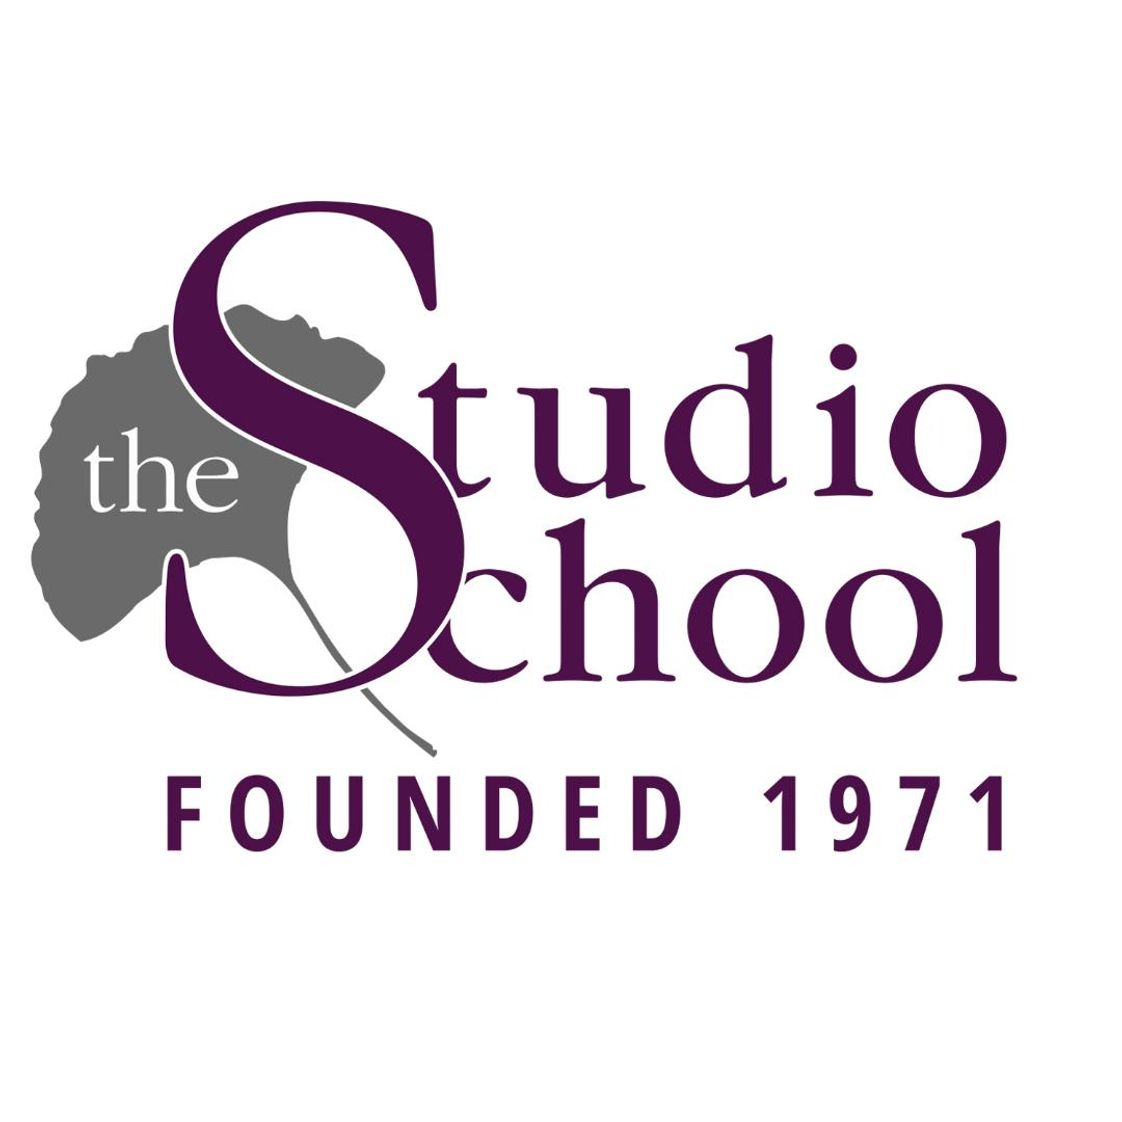 The Studio School Photo